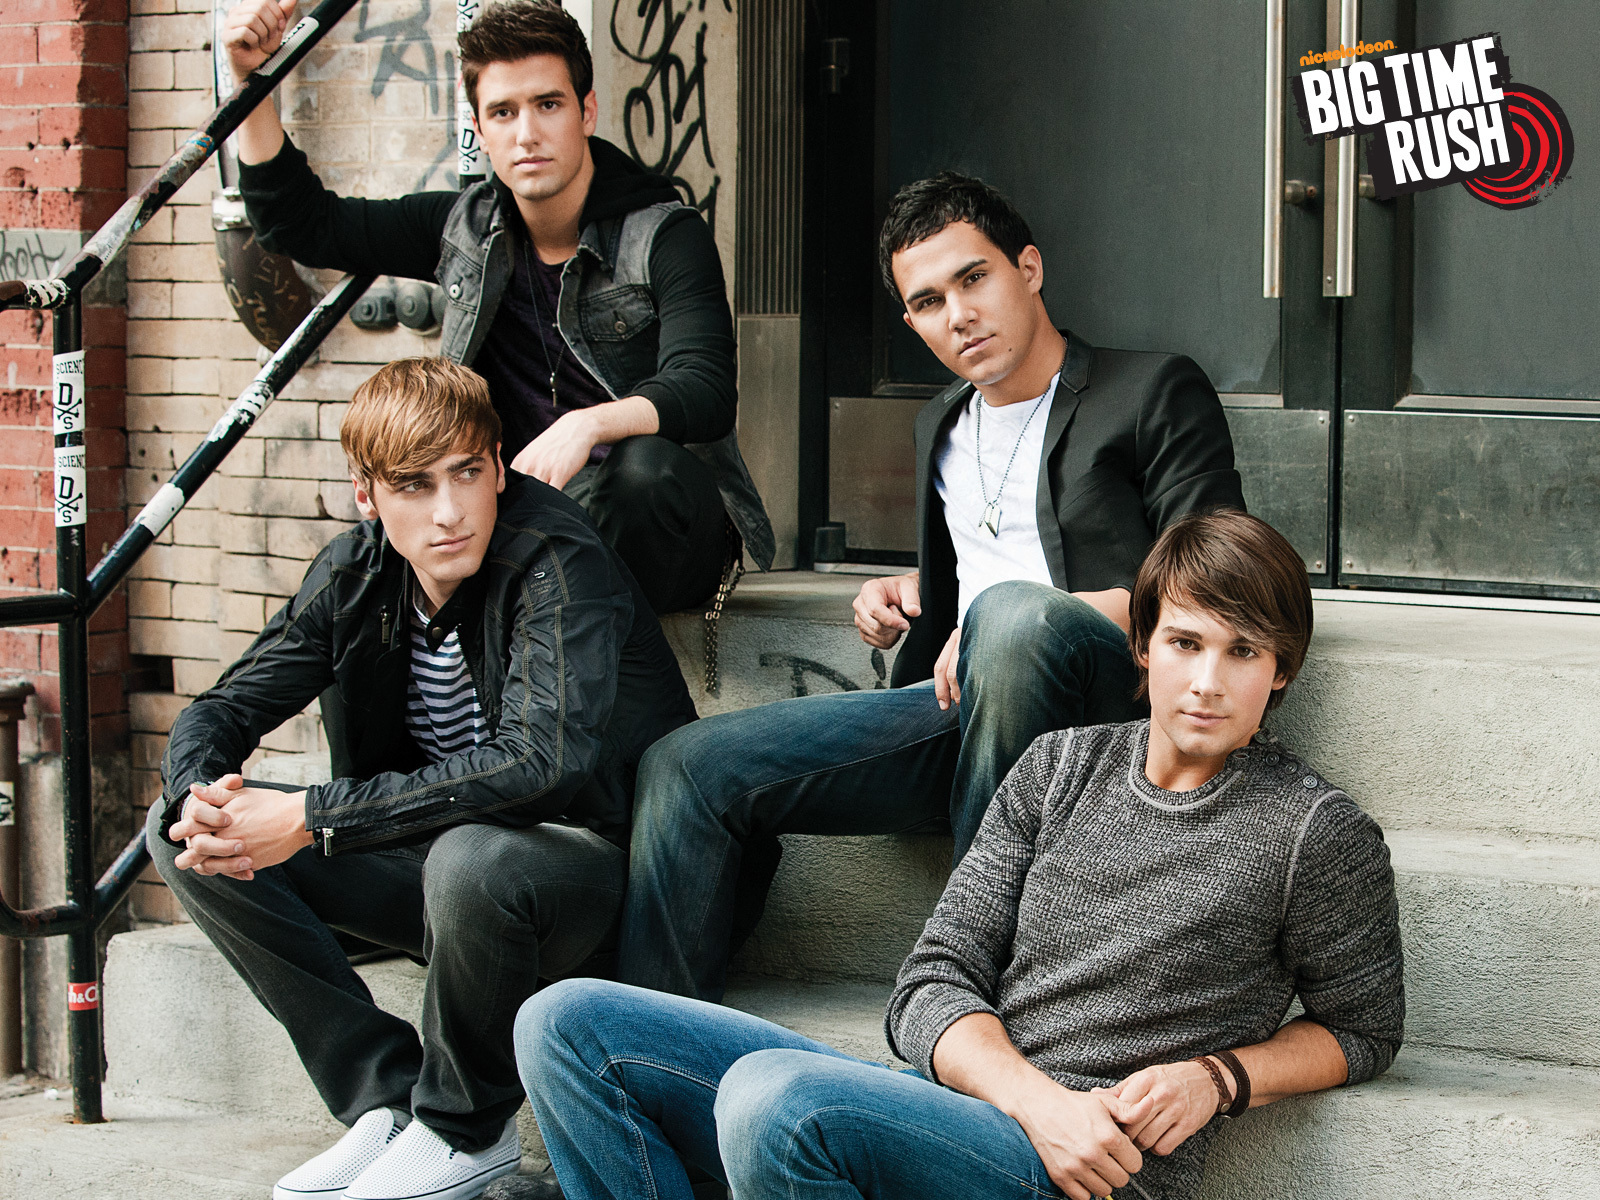 Big time rush Wallpapers Film en serie